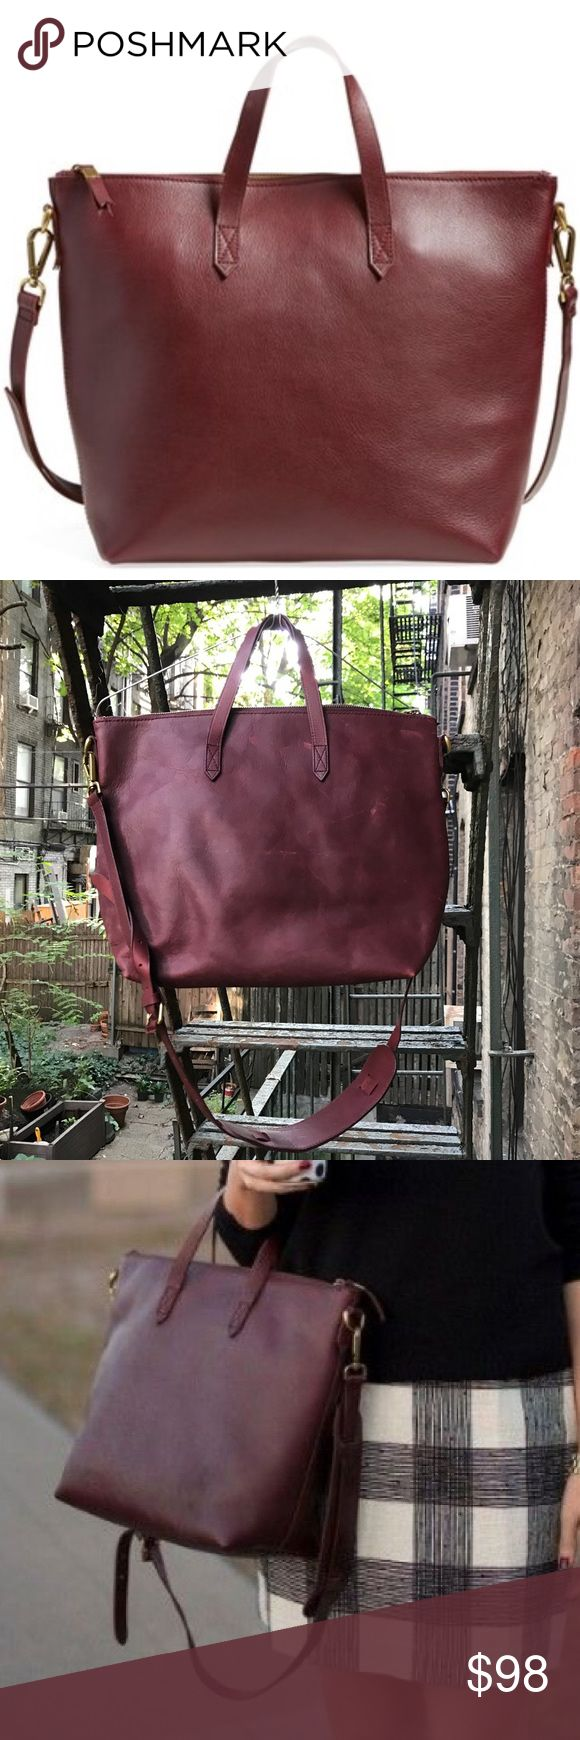 Burgundy zip medium leather transport tote Medium size leather tote - perfect for a carry on or laptop bag - hand straps and a removable cross body strap. See the second photo - a few scuffs from wear. In great shape! Madewell Bags